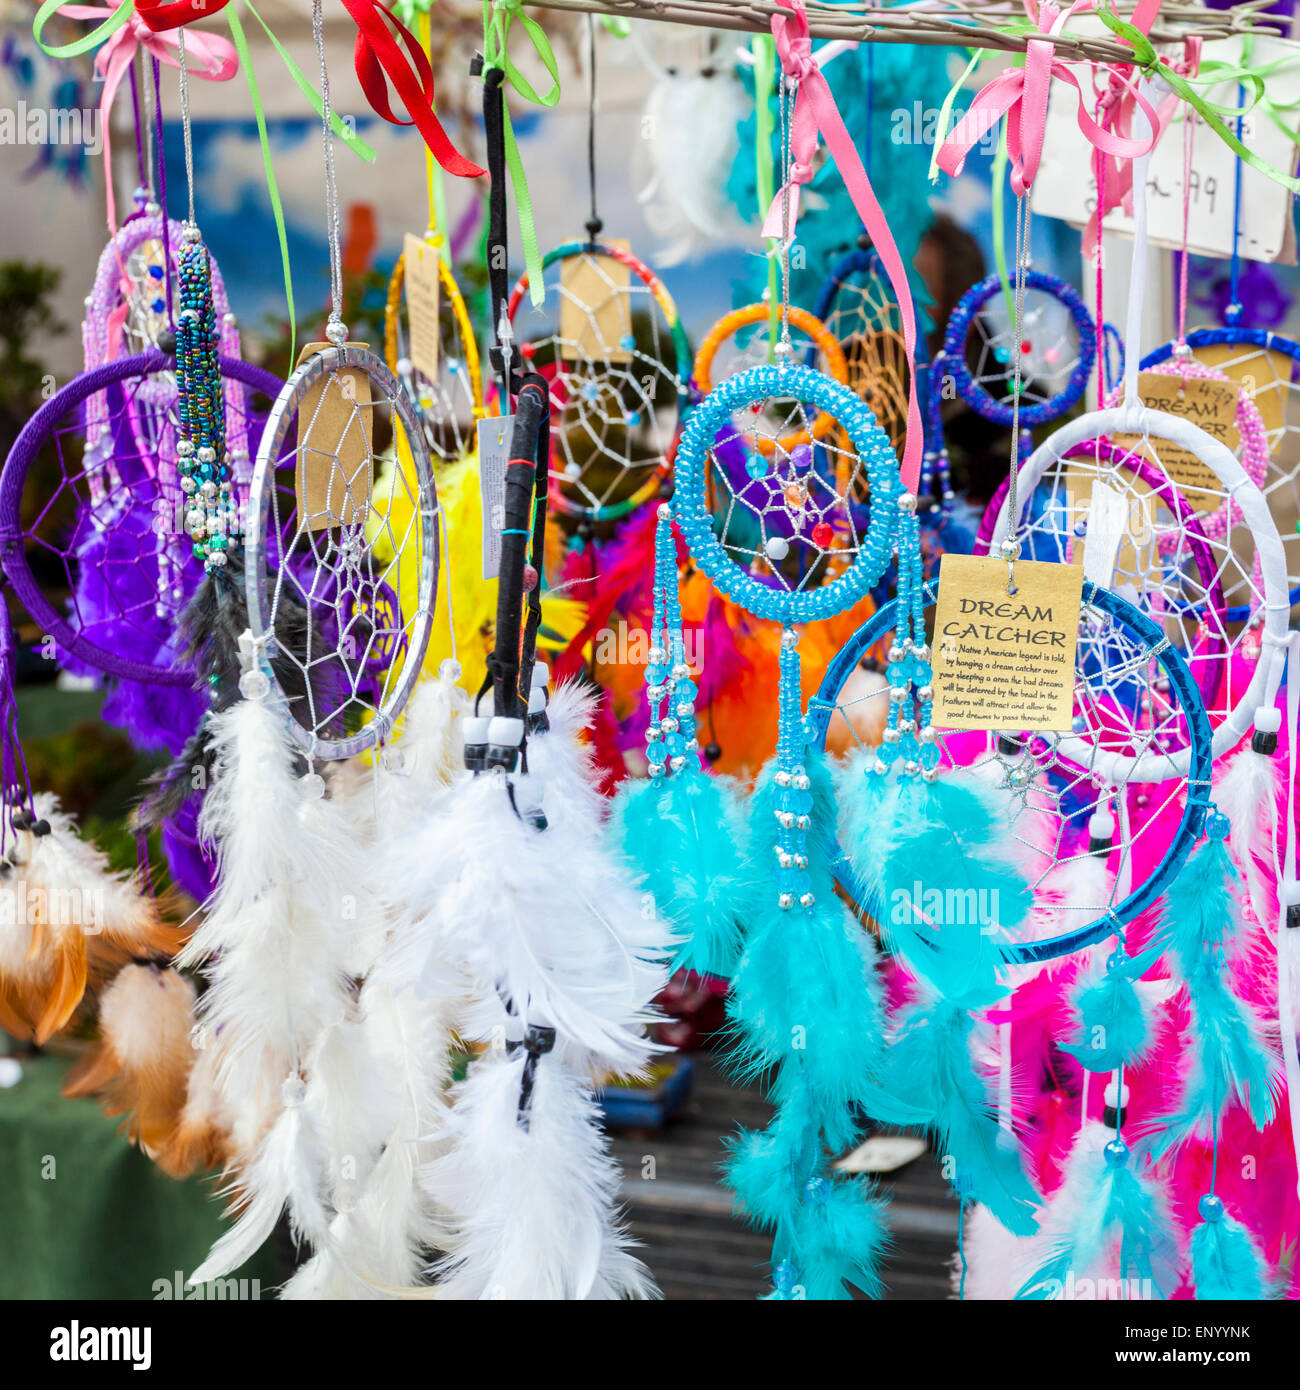 Dream catchers for sale on a market stall, Nottingham ...